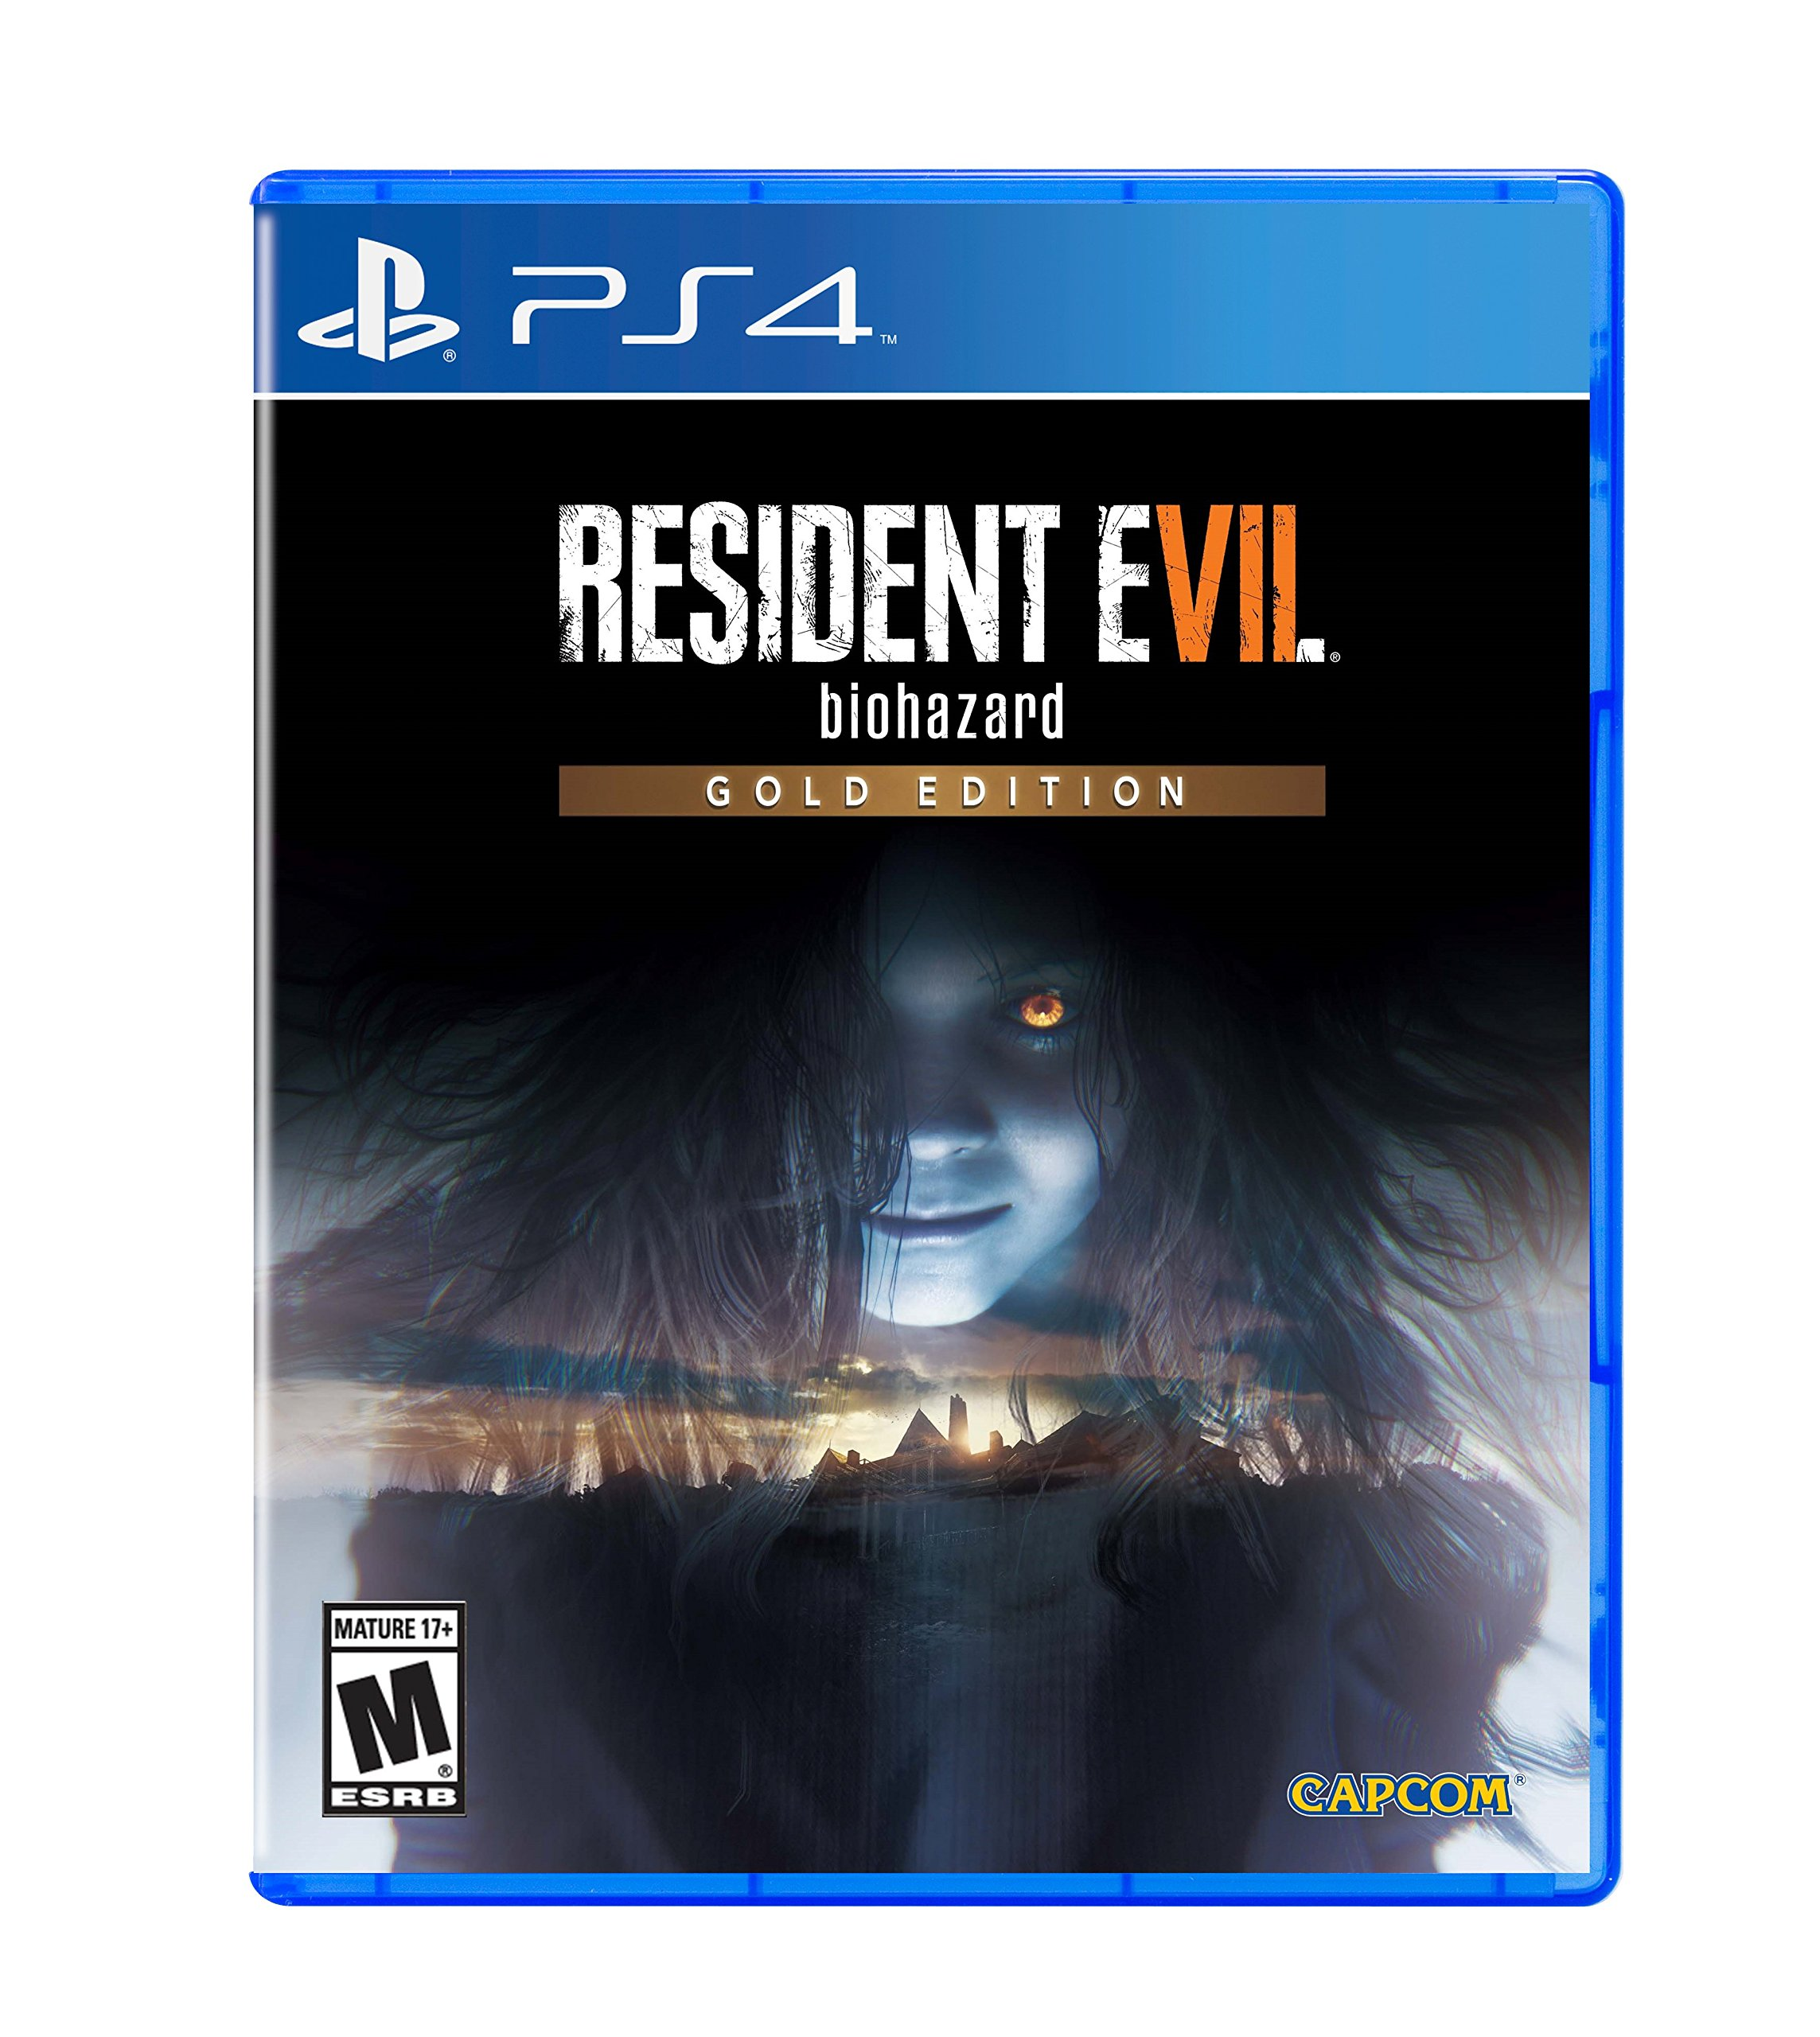 Buy Resident Evil Biohazard Now!